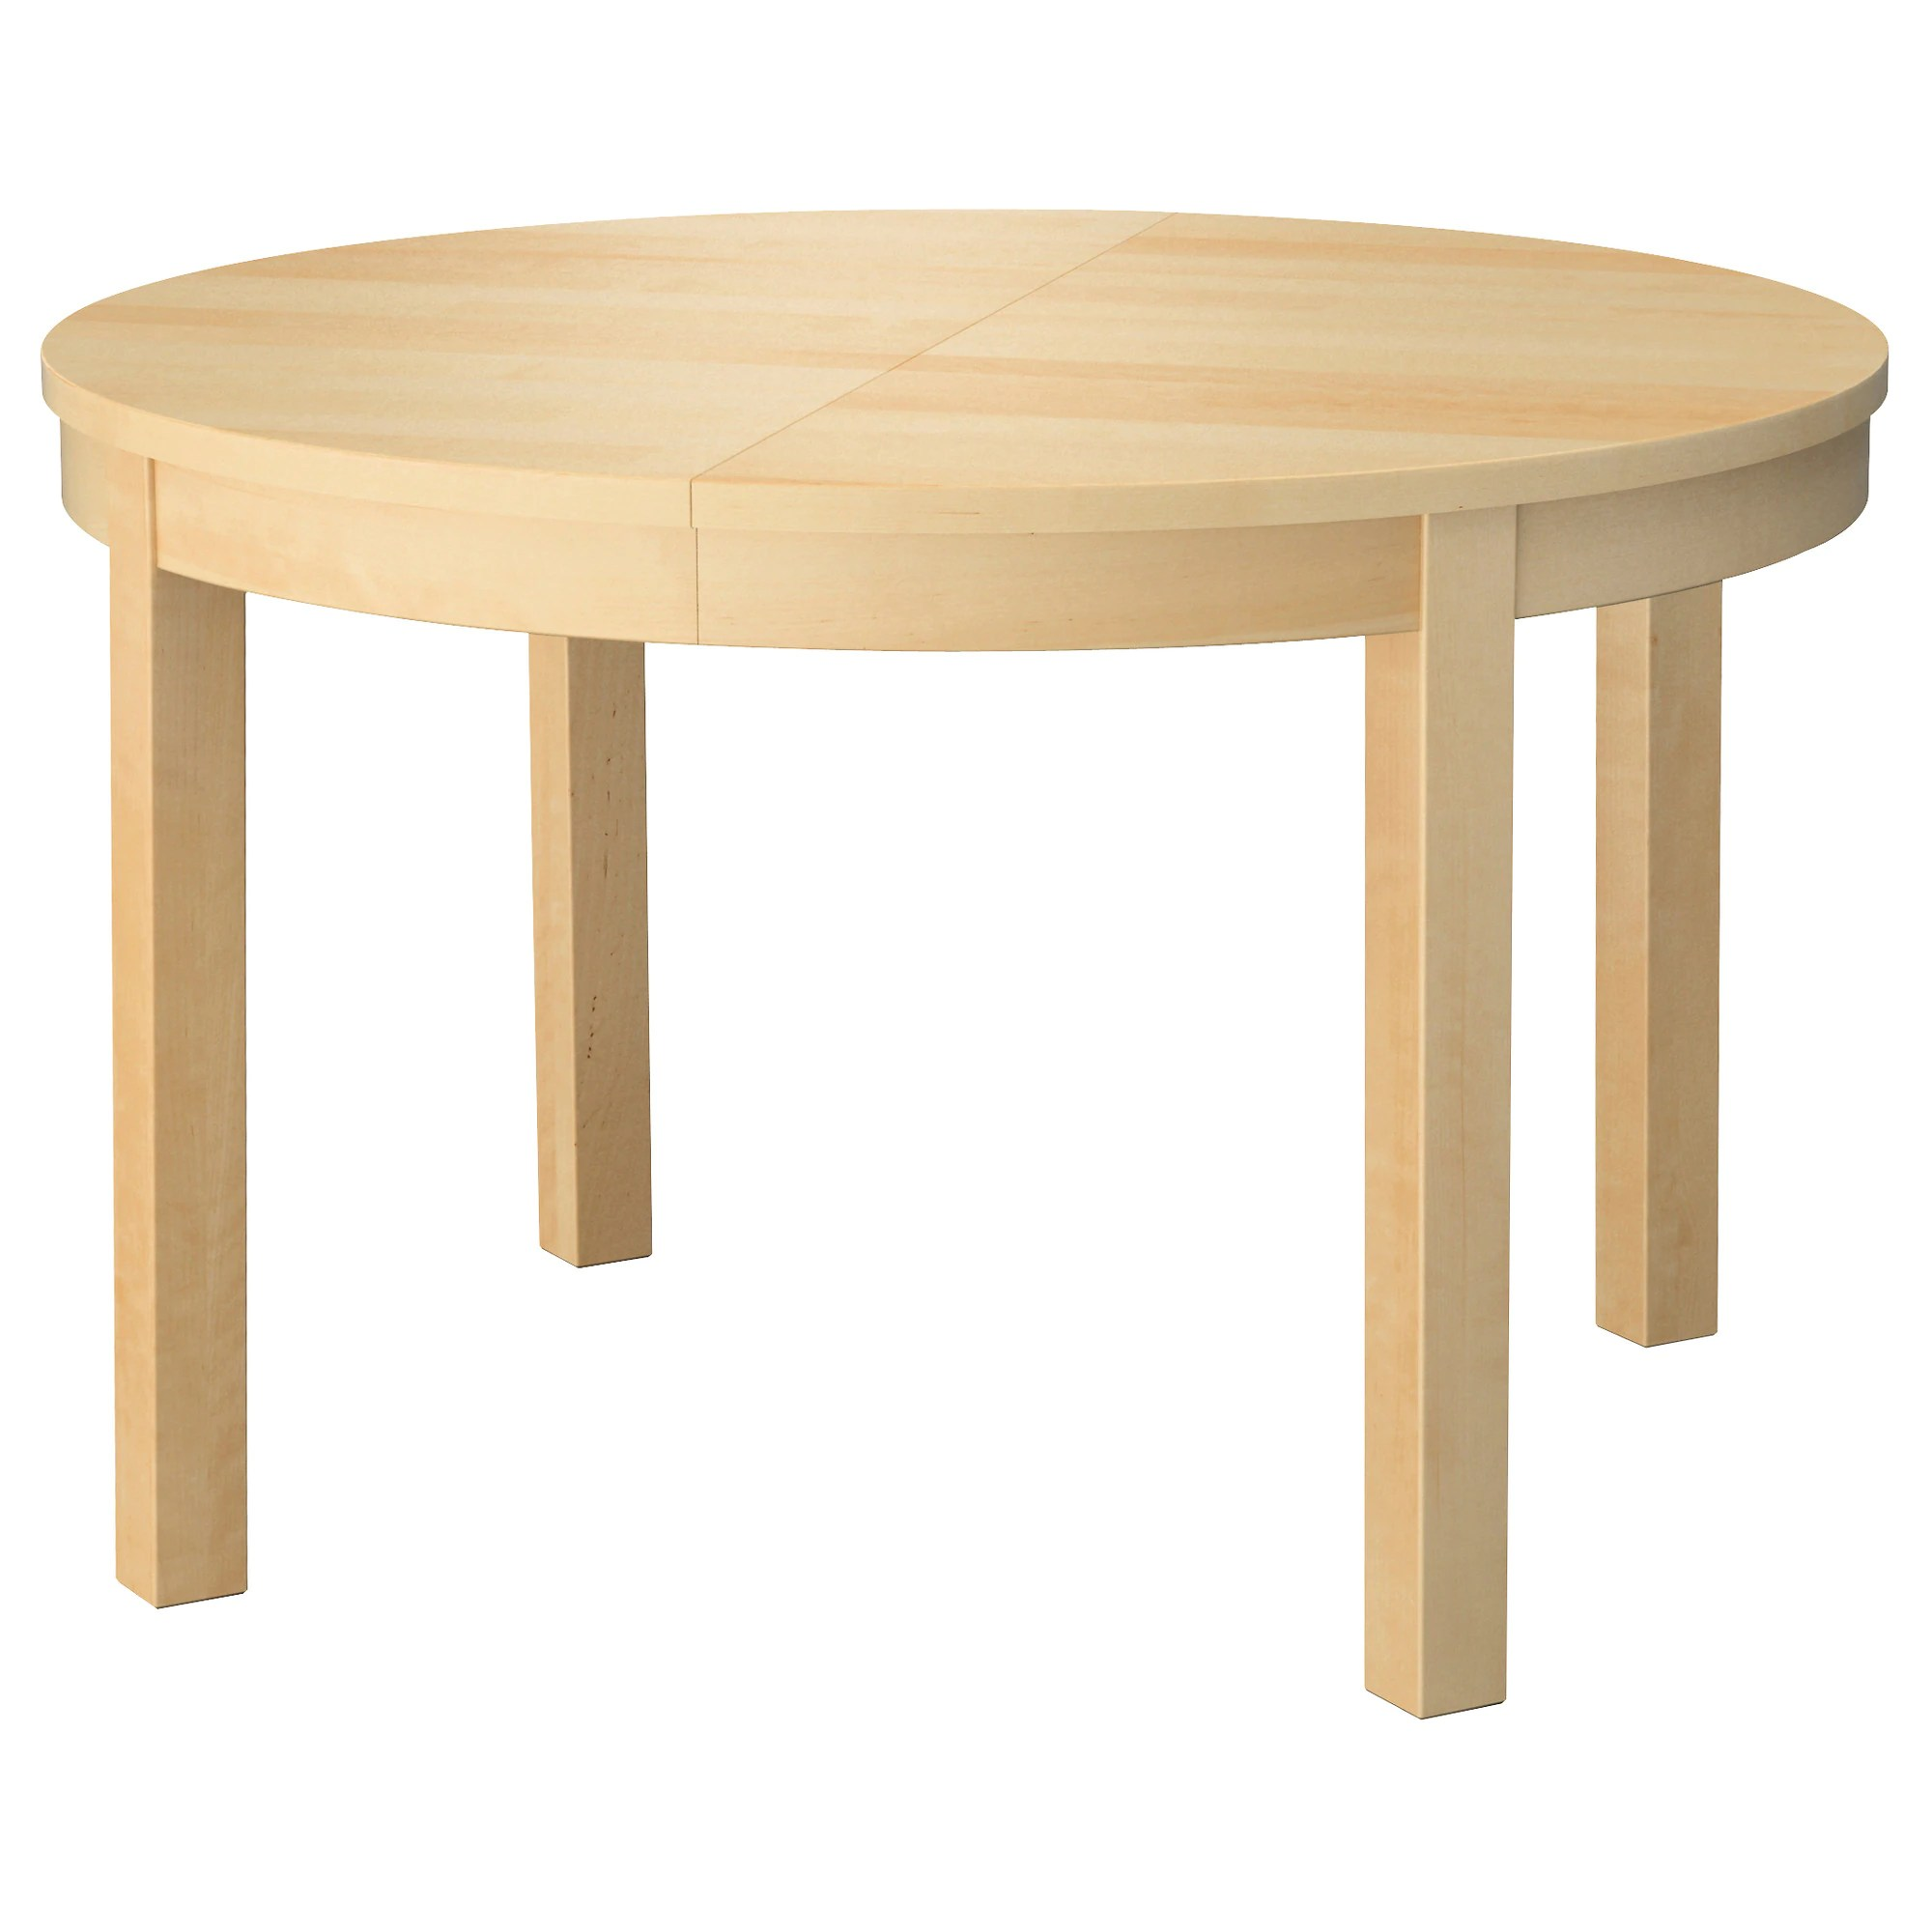 Table Bjursta Occasion Ikea Table Ronde Table De Lit